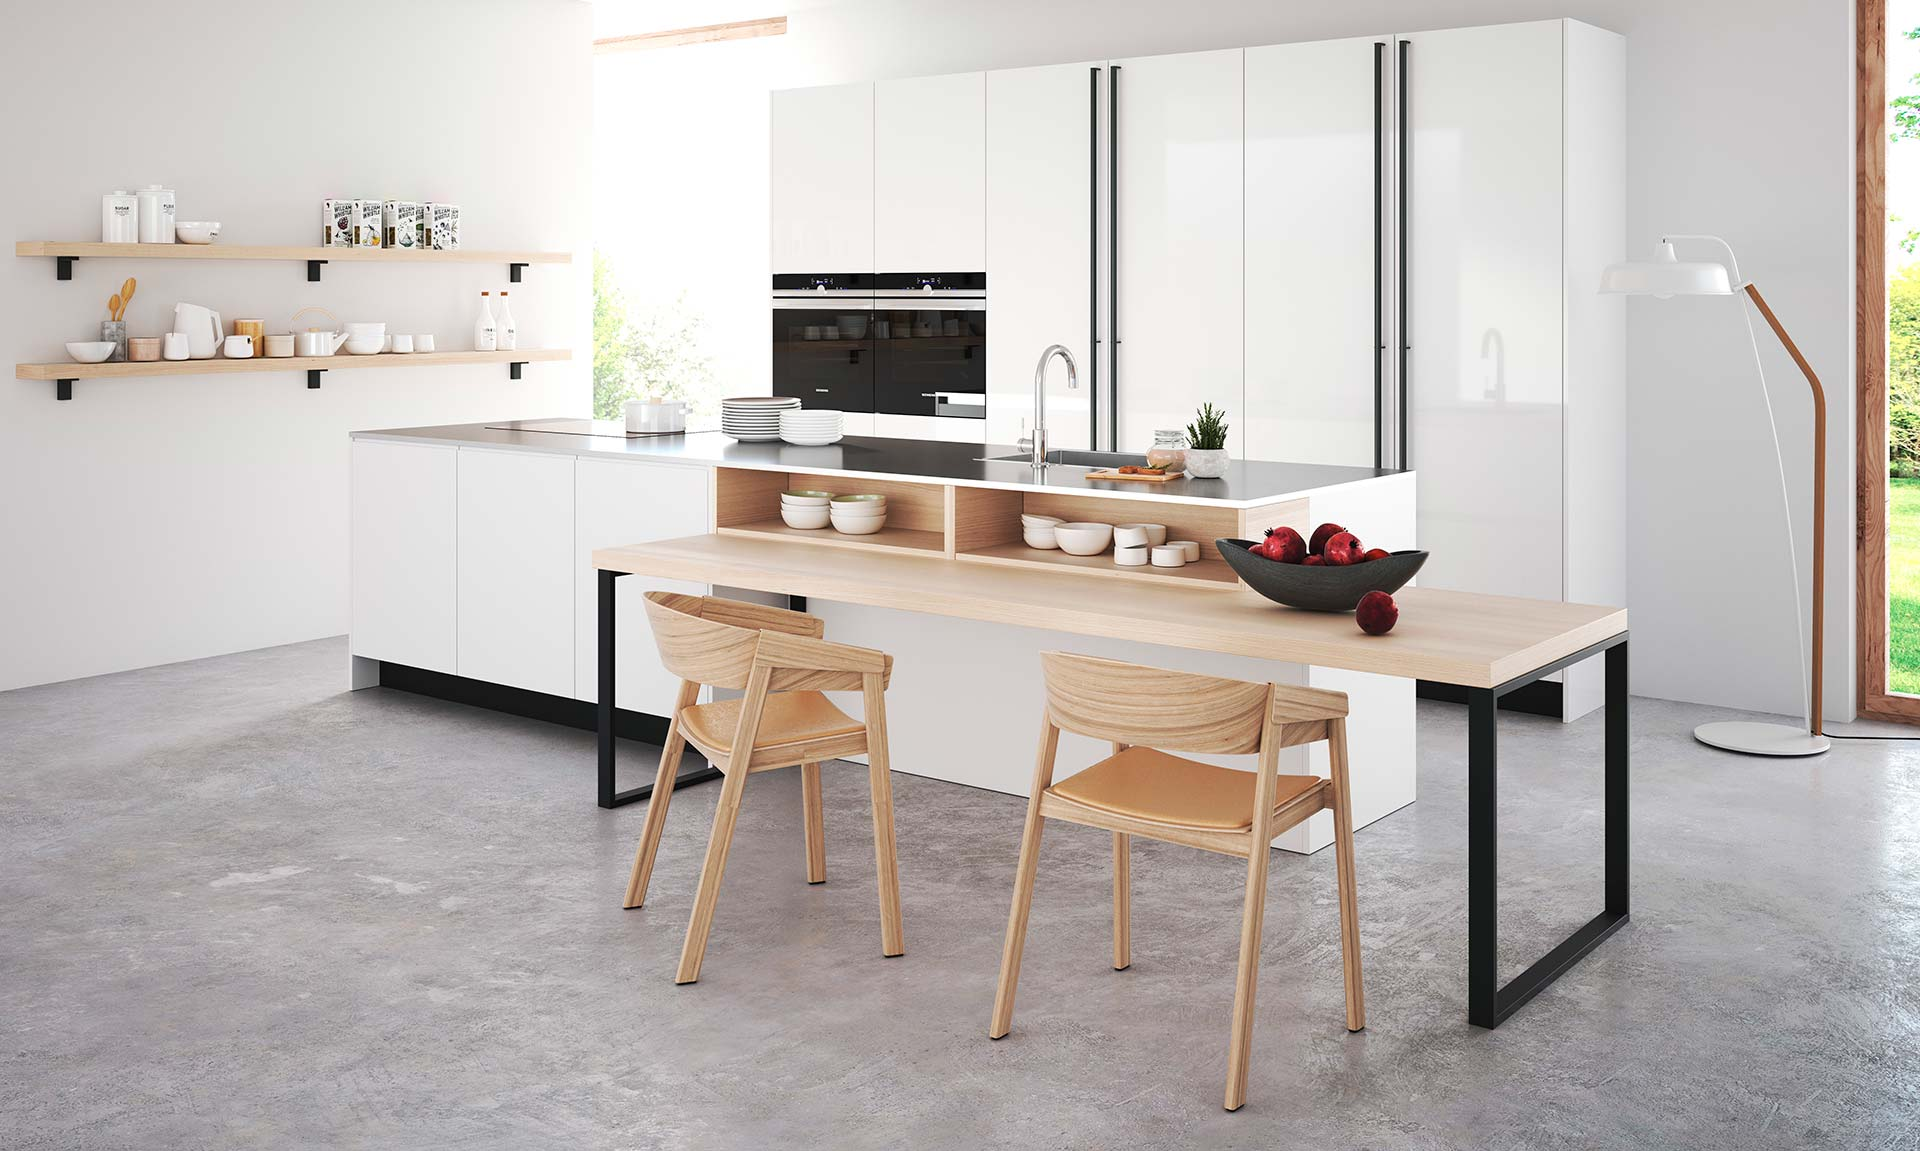 White gloss contemporary german kitchen wood breakfast bar black handles modern